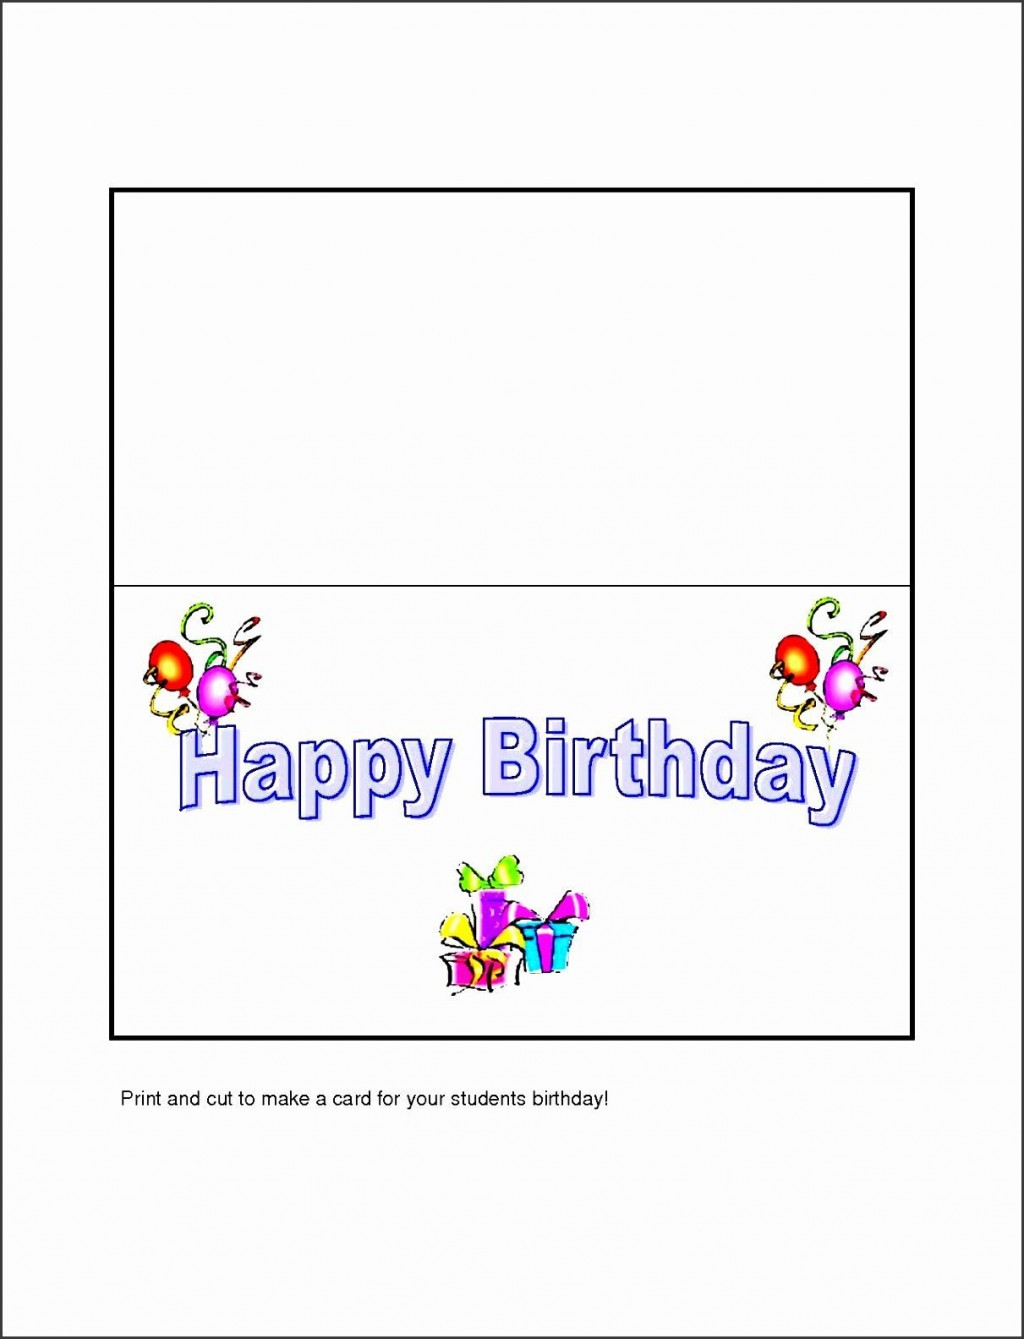 009 Astounding Happy Birthday Card Template For Word Concept Large